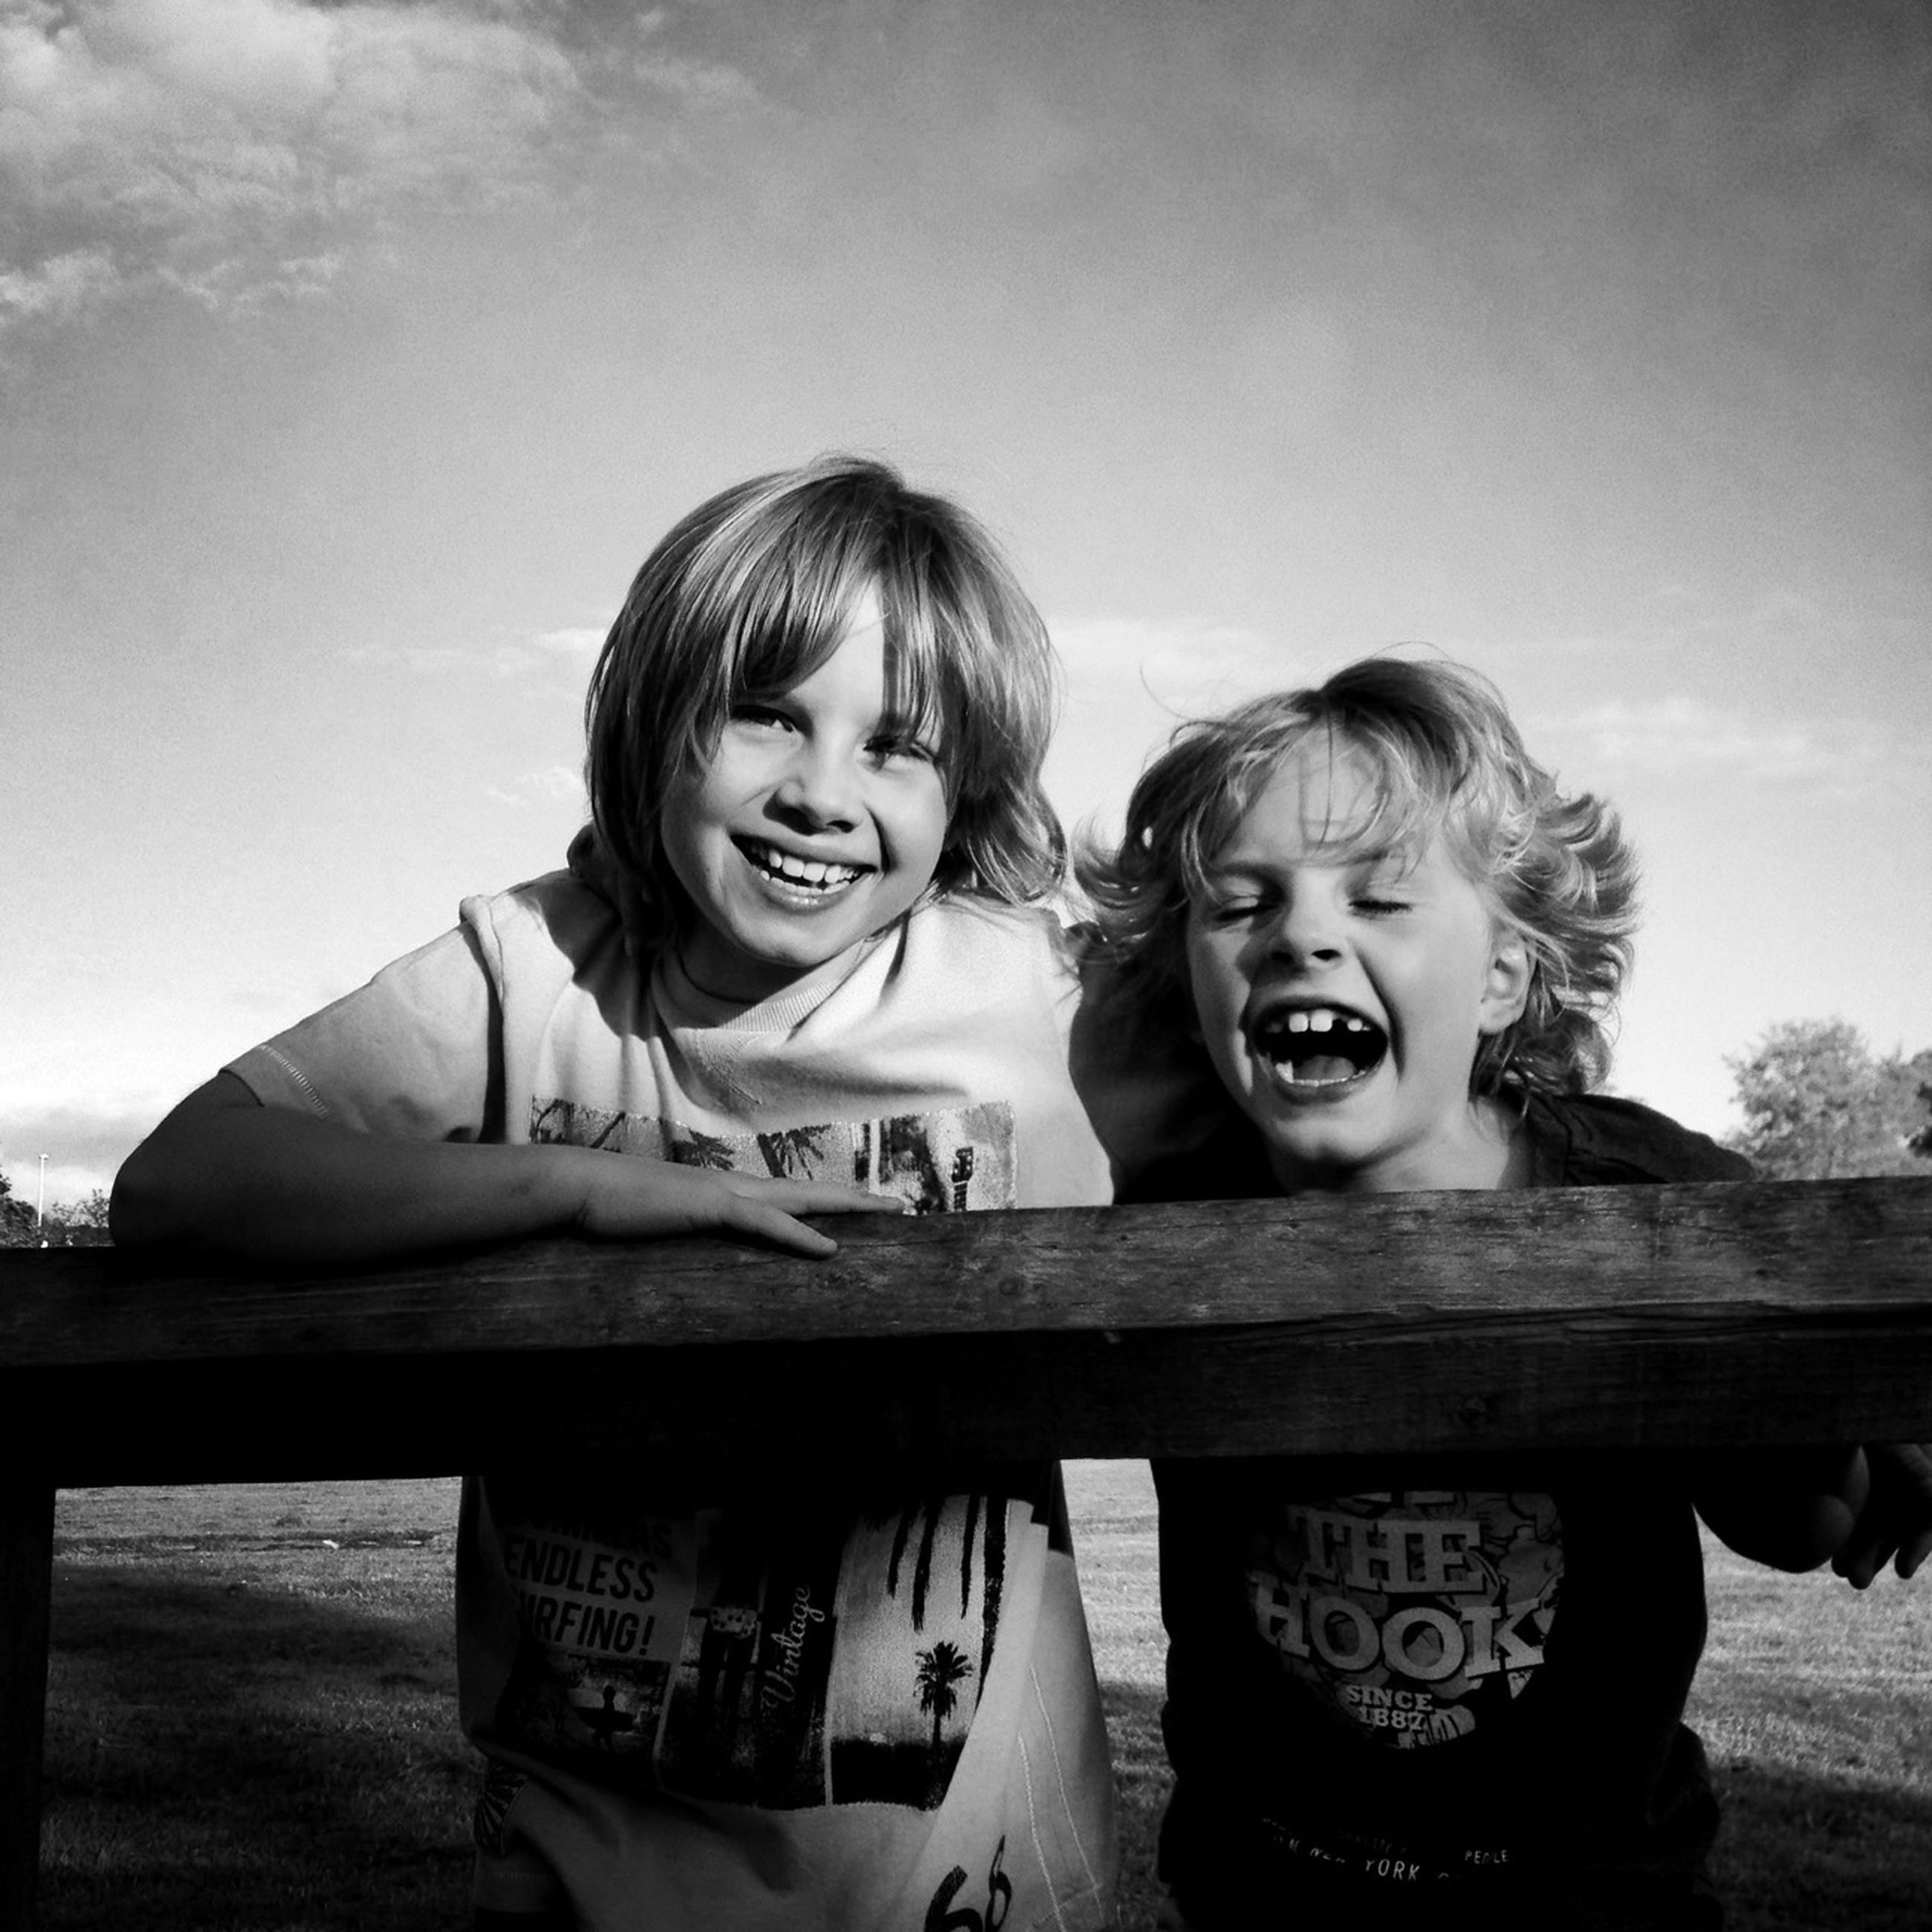 togetherness, lifestyles, bonding, leisure activity, person, love, friendship, smiling, casual clothing, happiness, portrait, family, looking at camera, childhood, brother, elementary age, young adult, boys